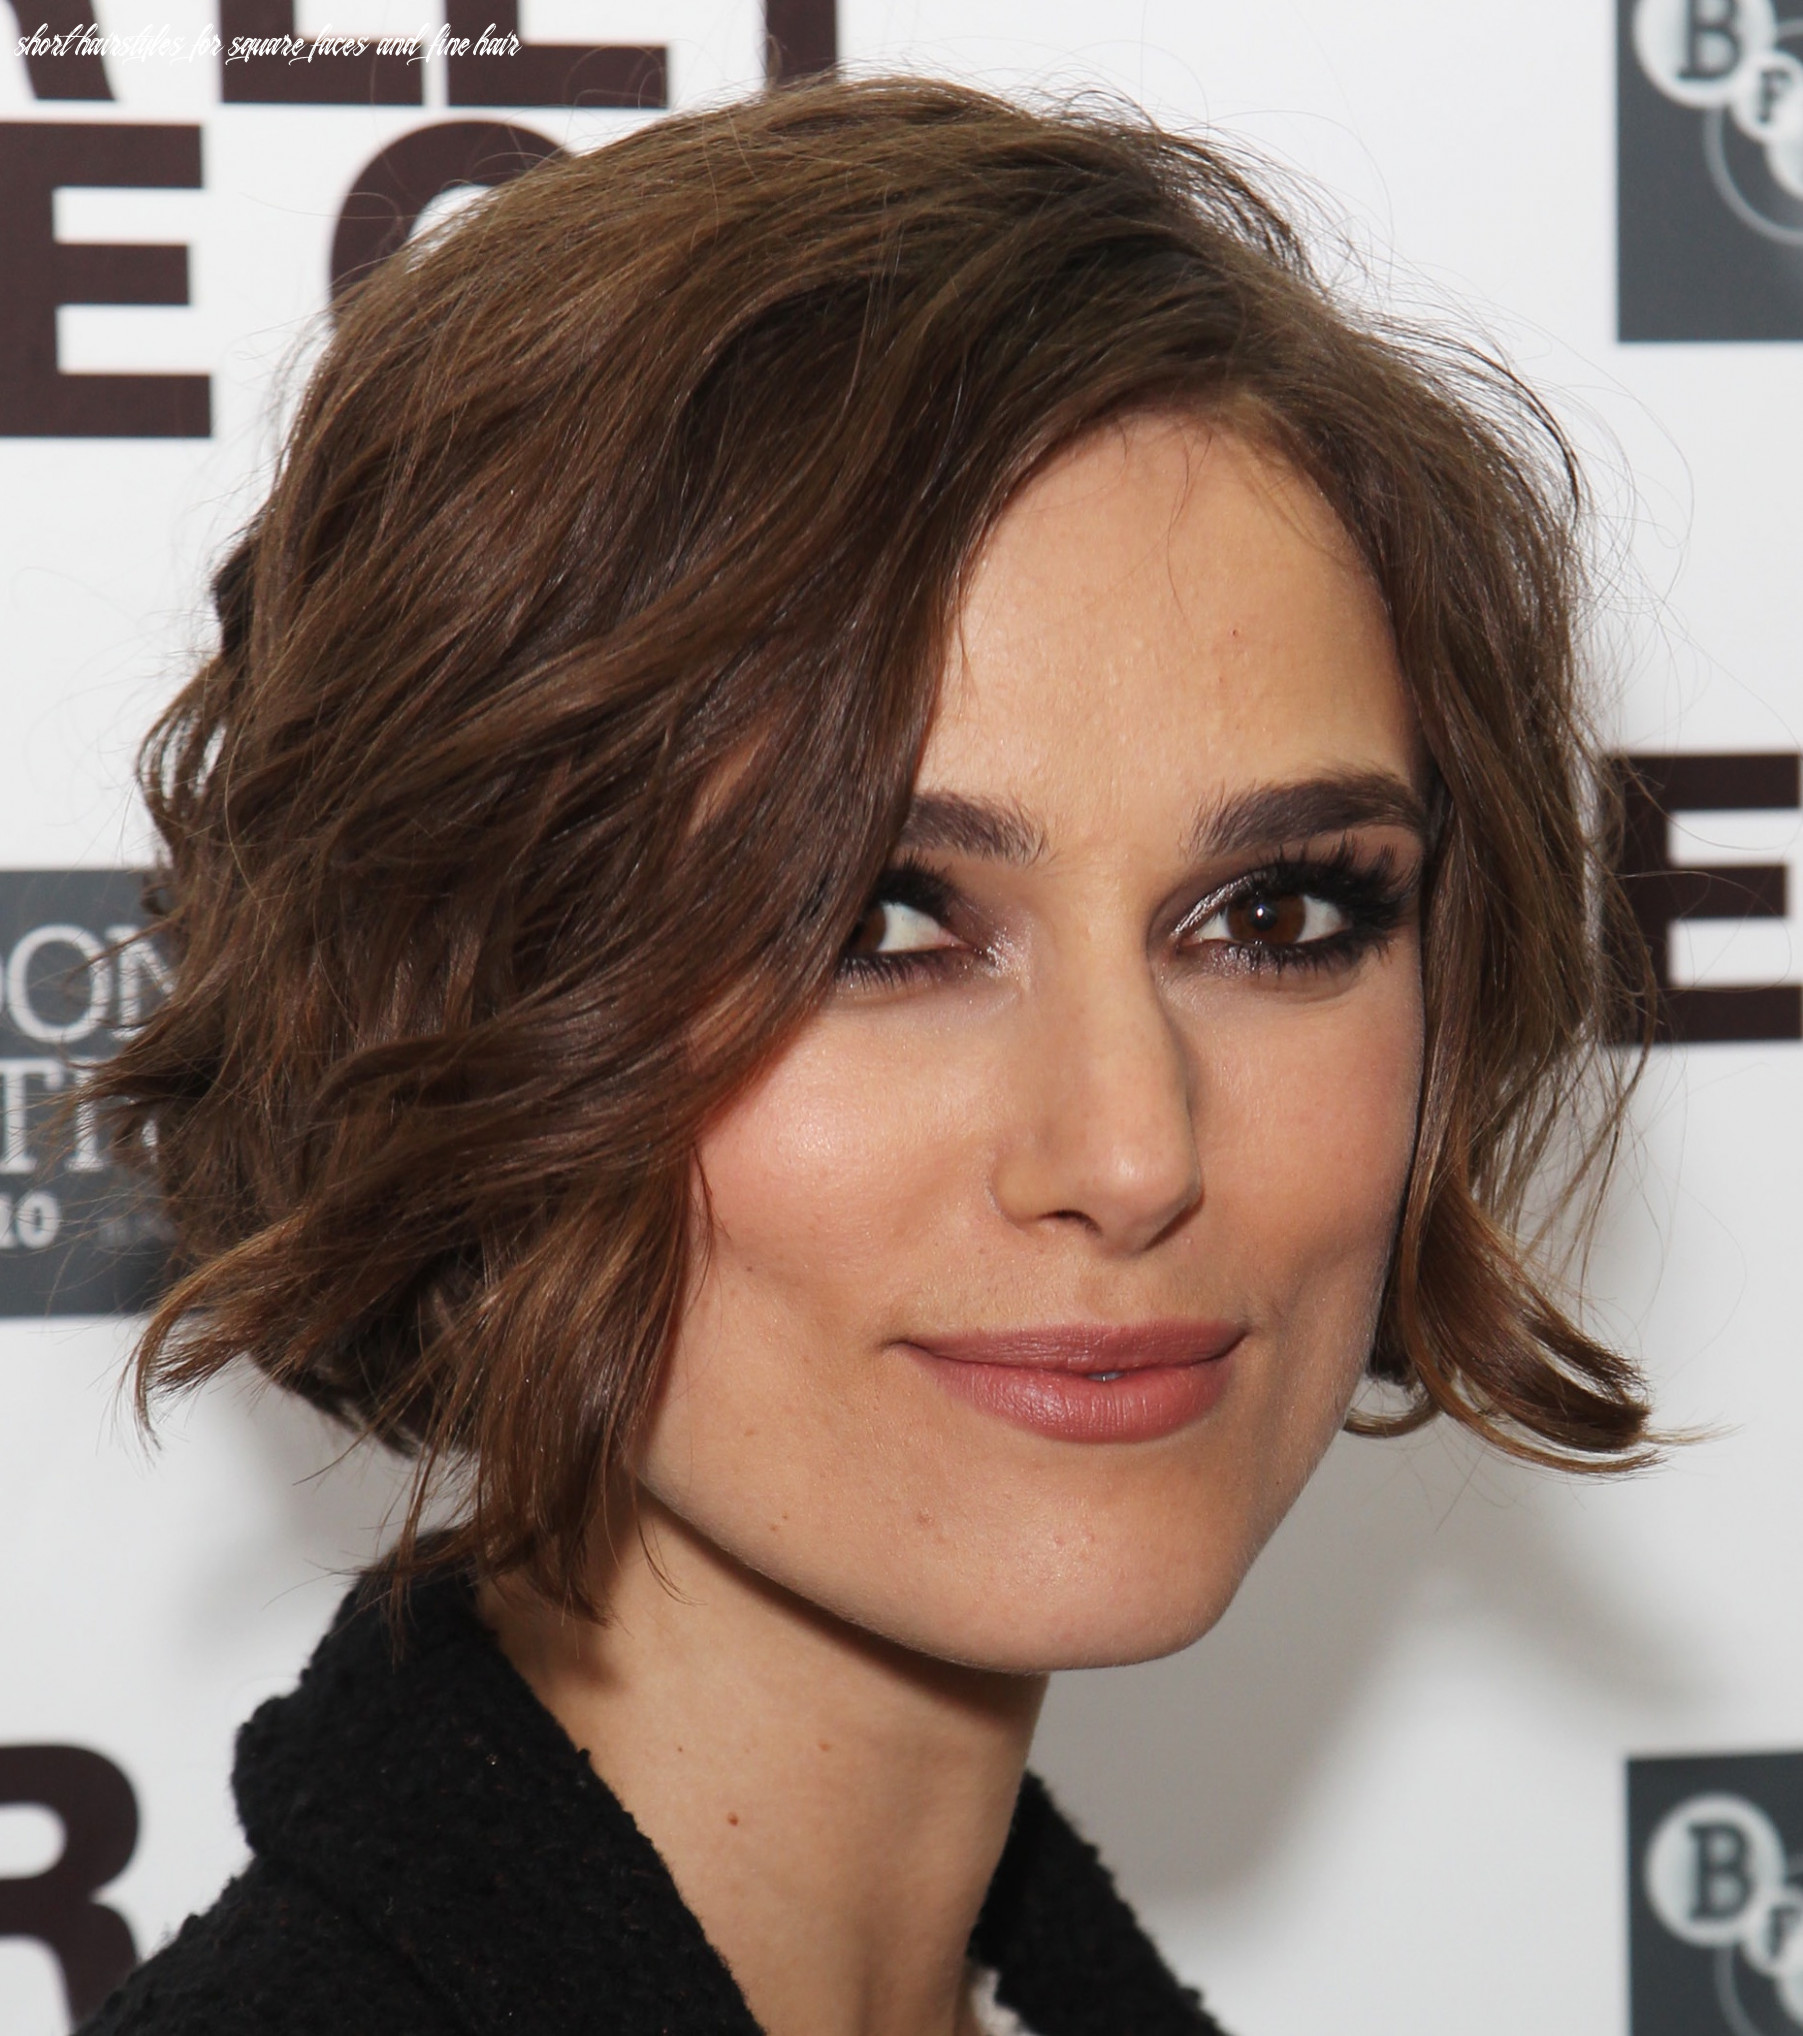 10 best hairstyles for square faces rounding the angles short hairstyles for square faces and fine hair